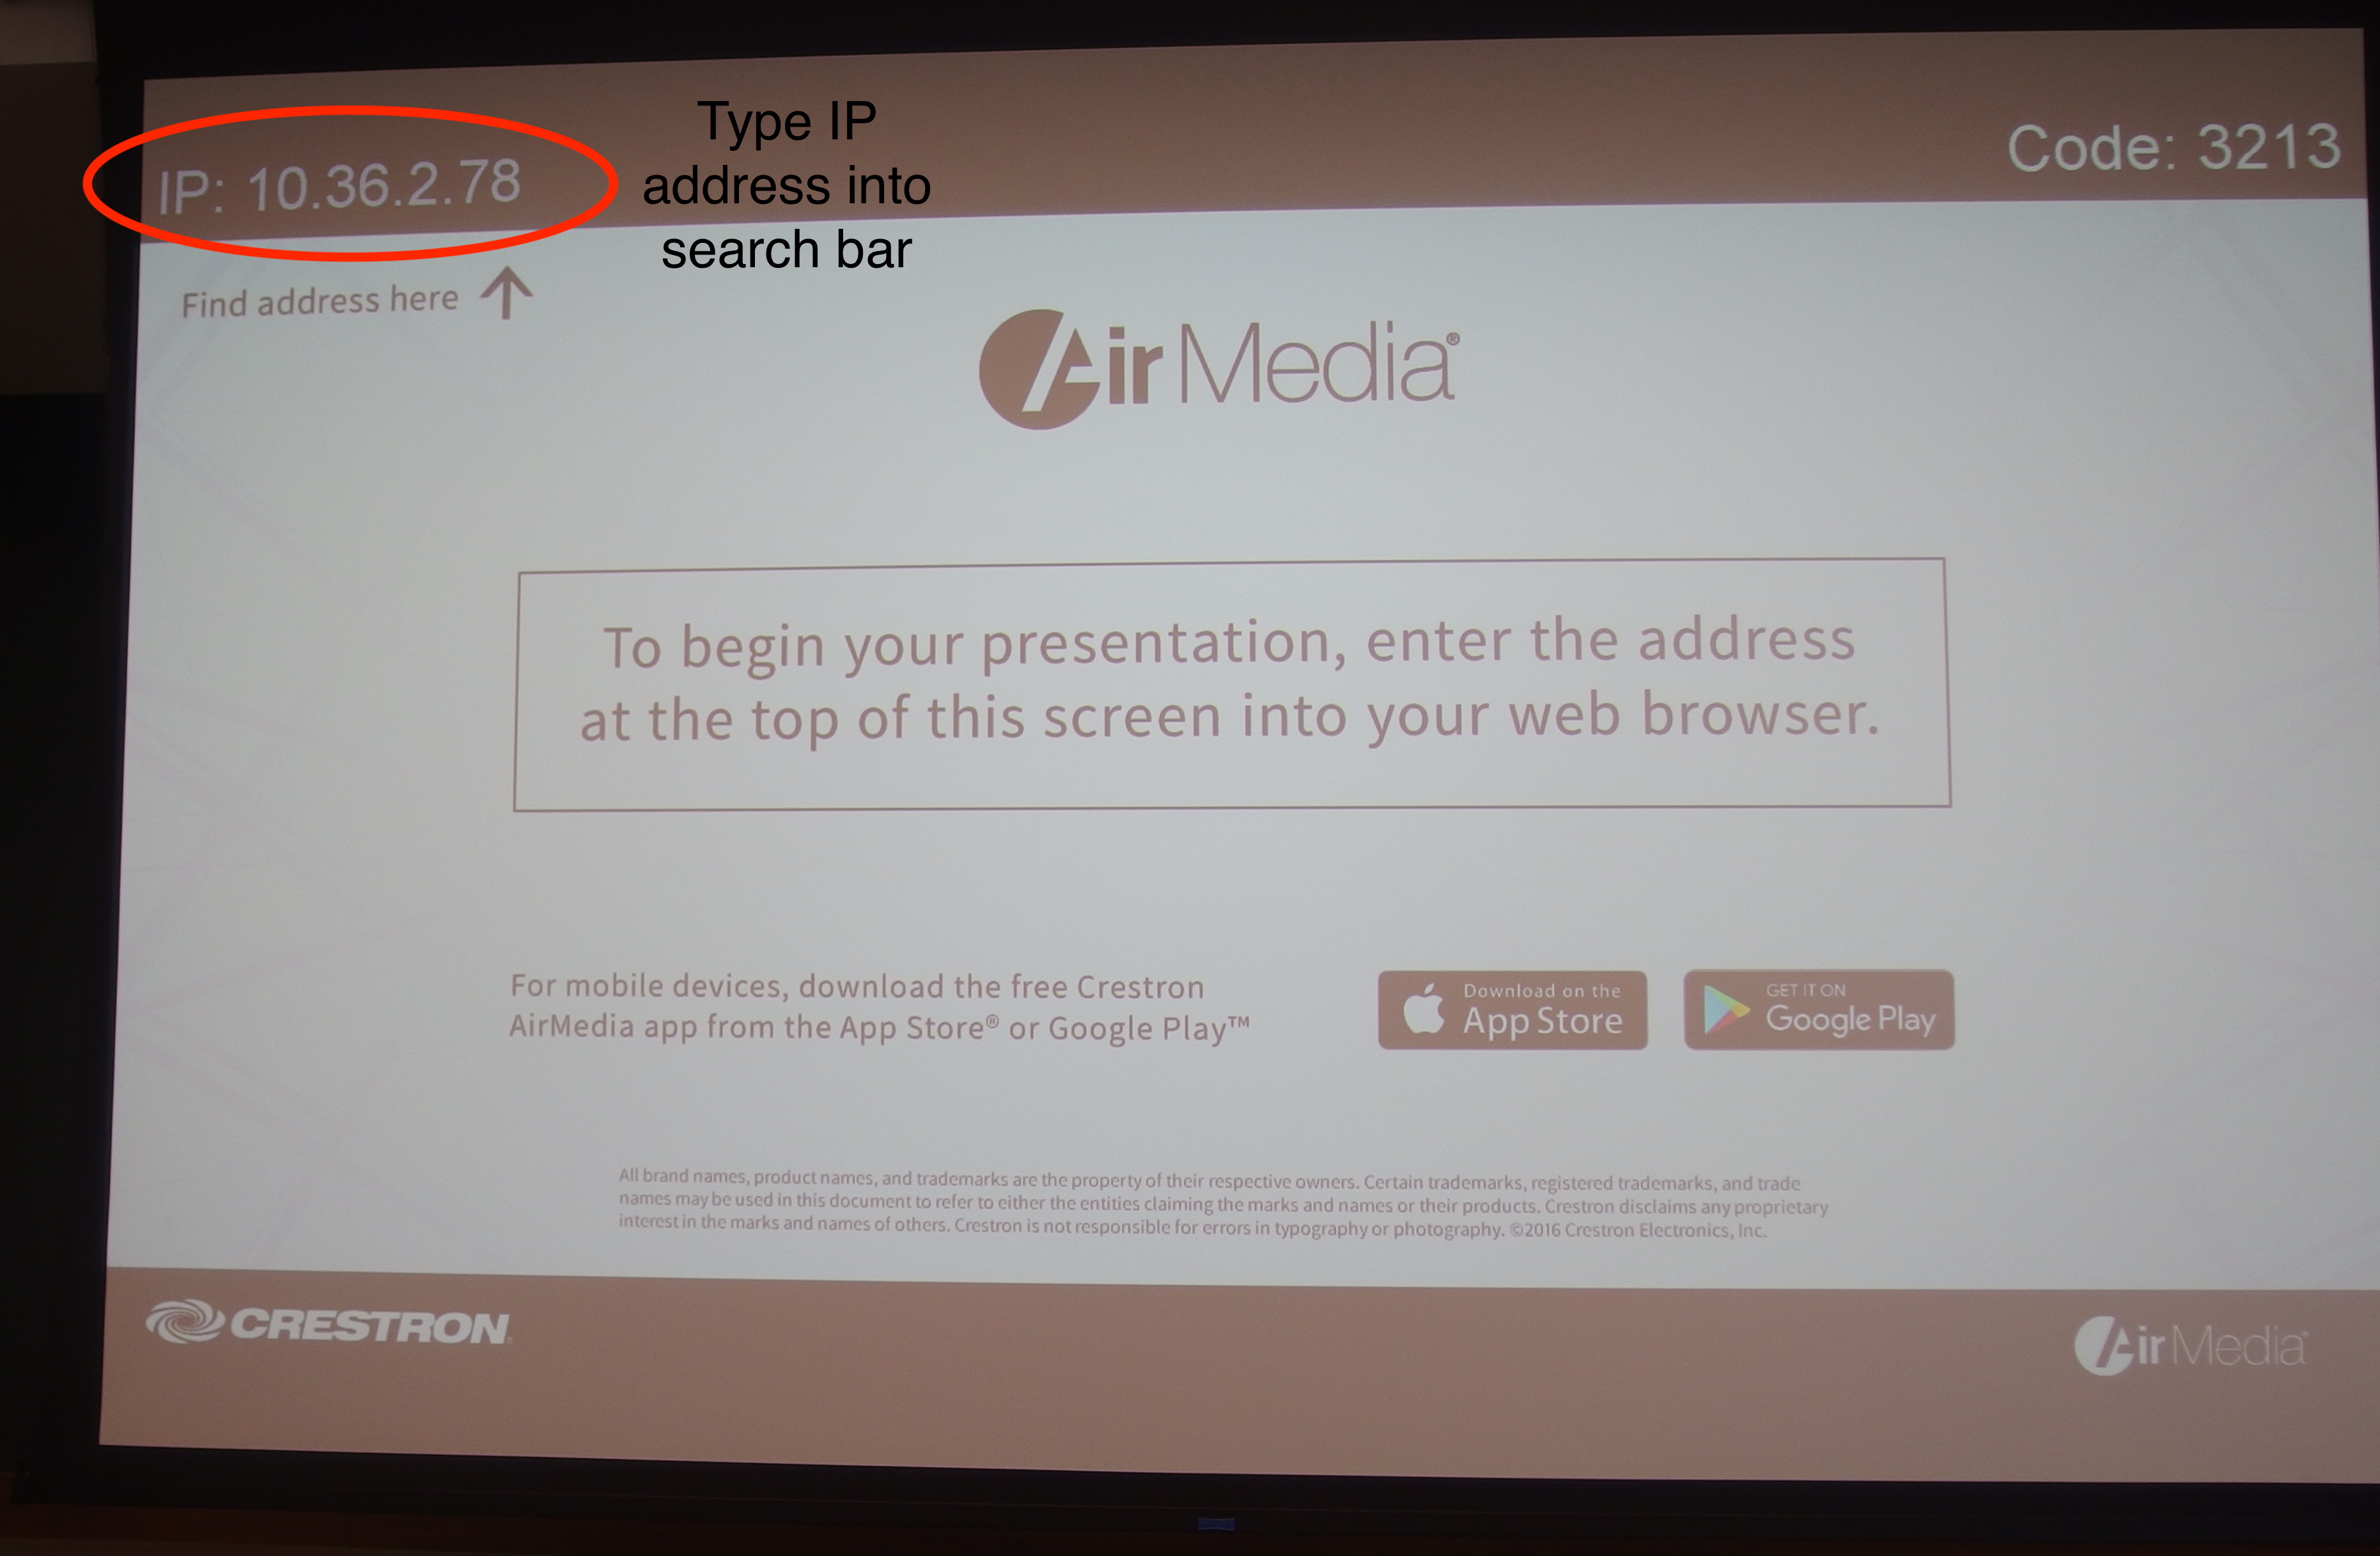 Picture of AirMedia IP address on projector screen.